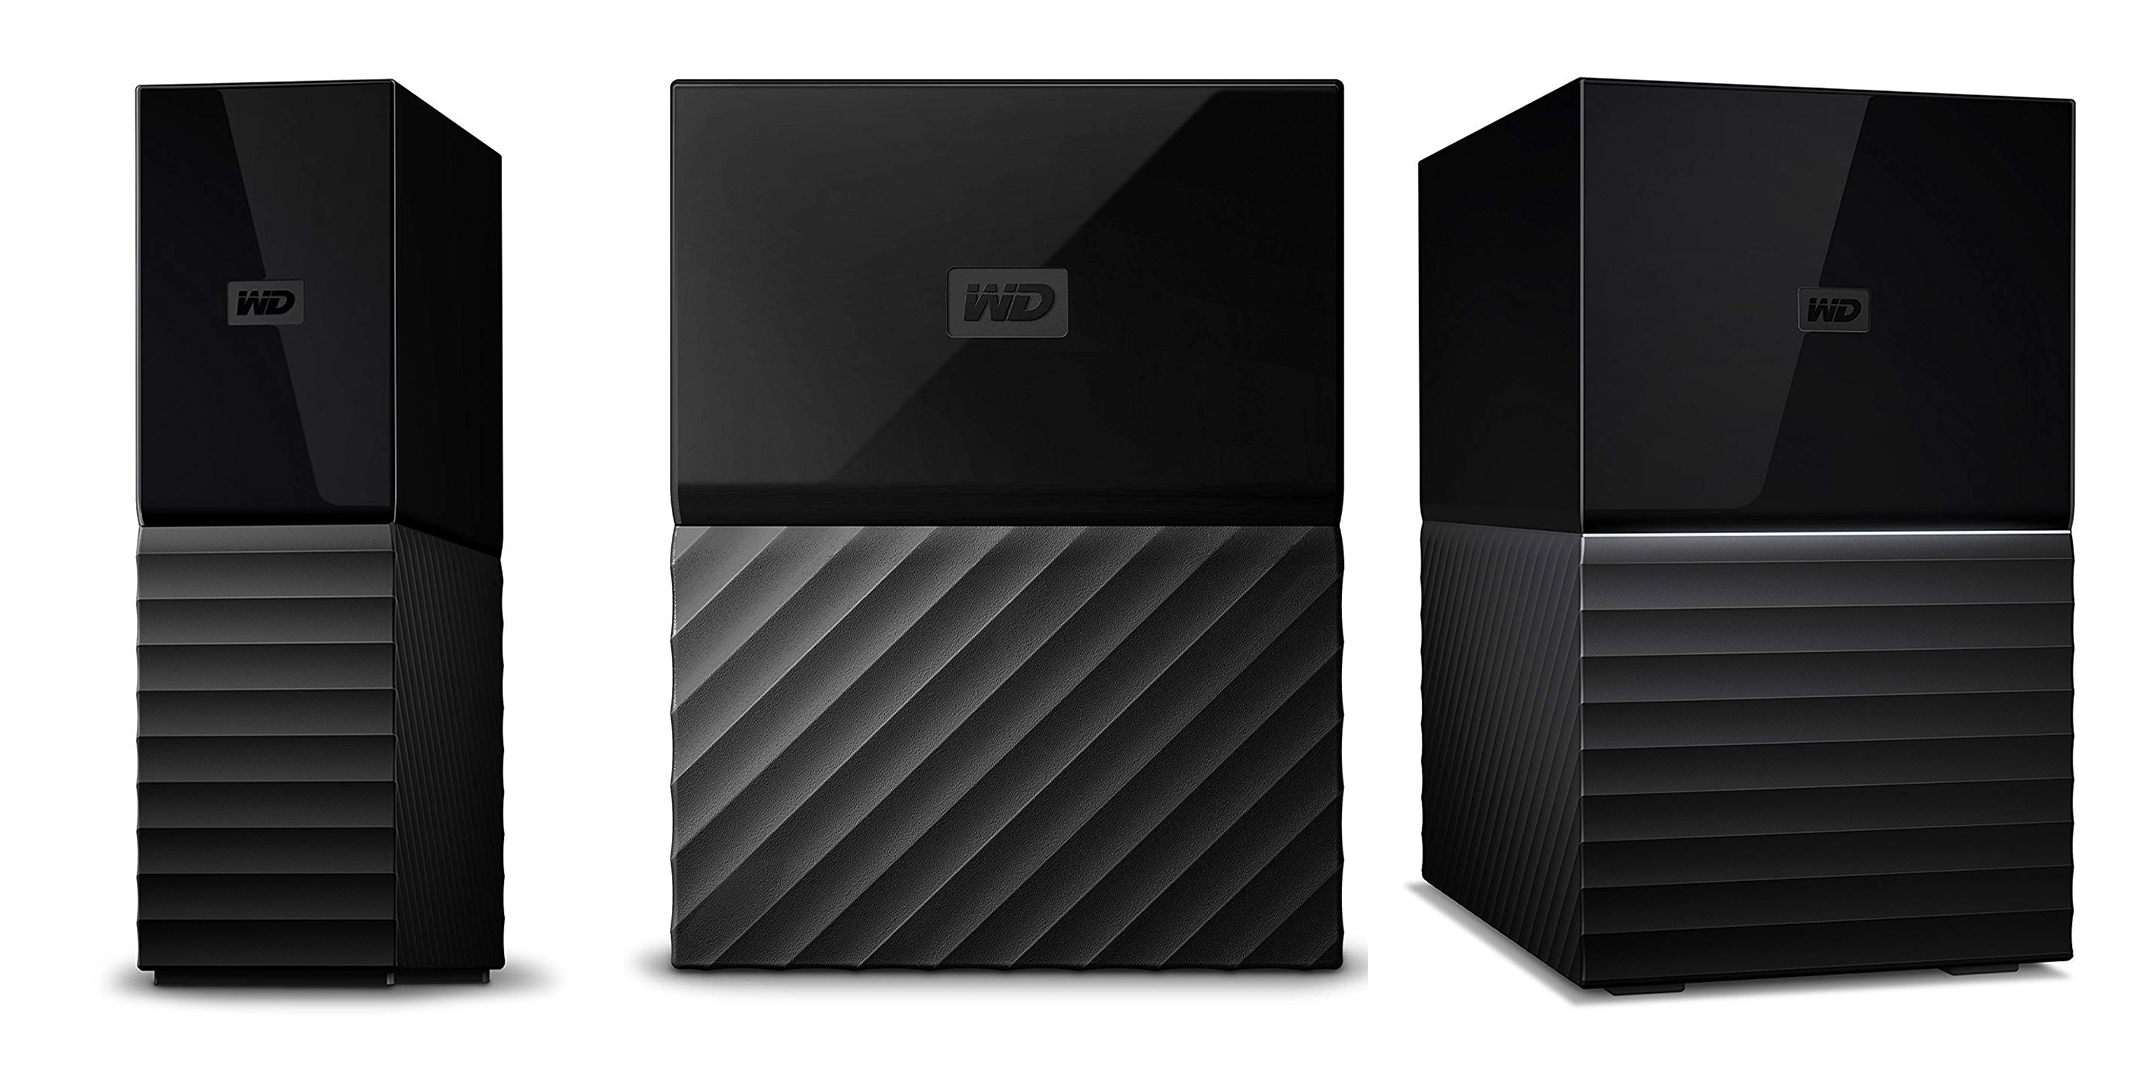 Amazon offers all-time lows on WD hard drives: 4TB portable $55, 10TB desktop $80, more